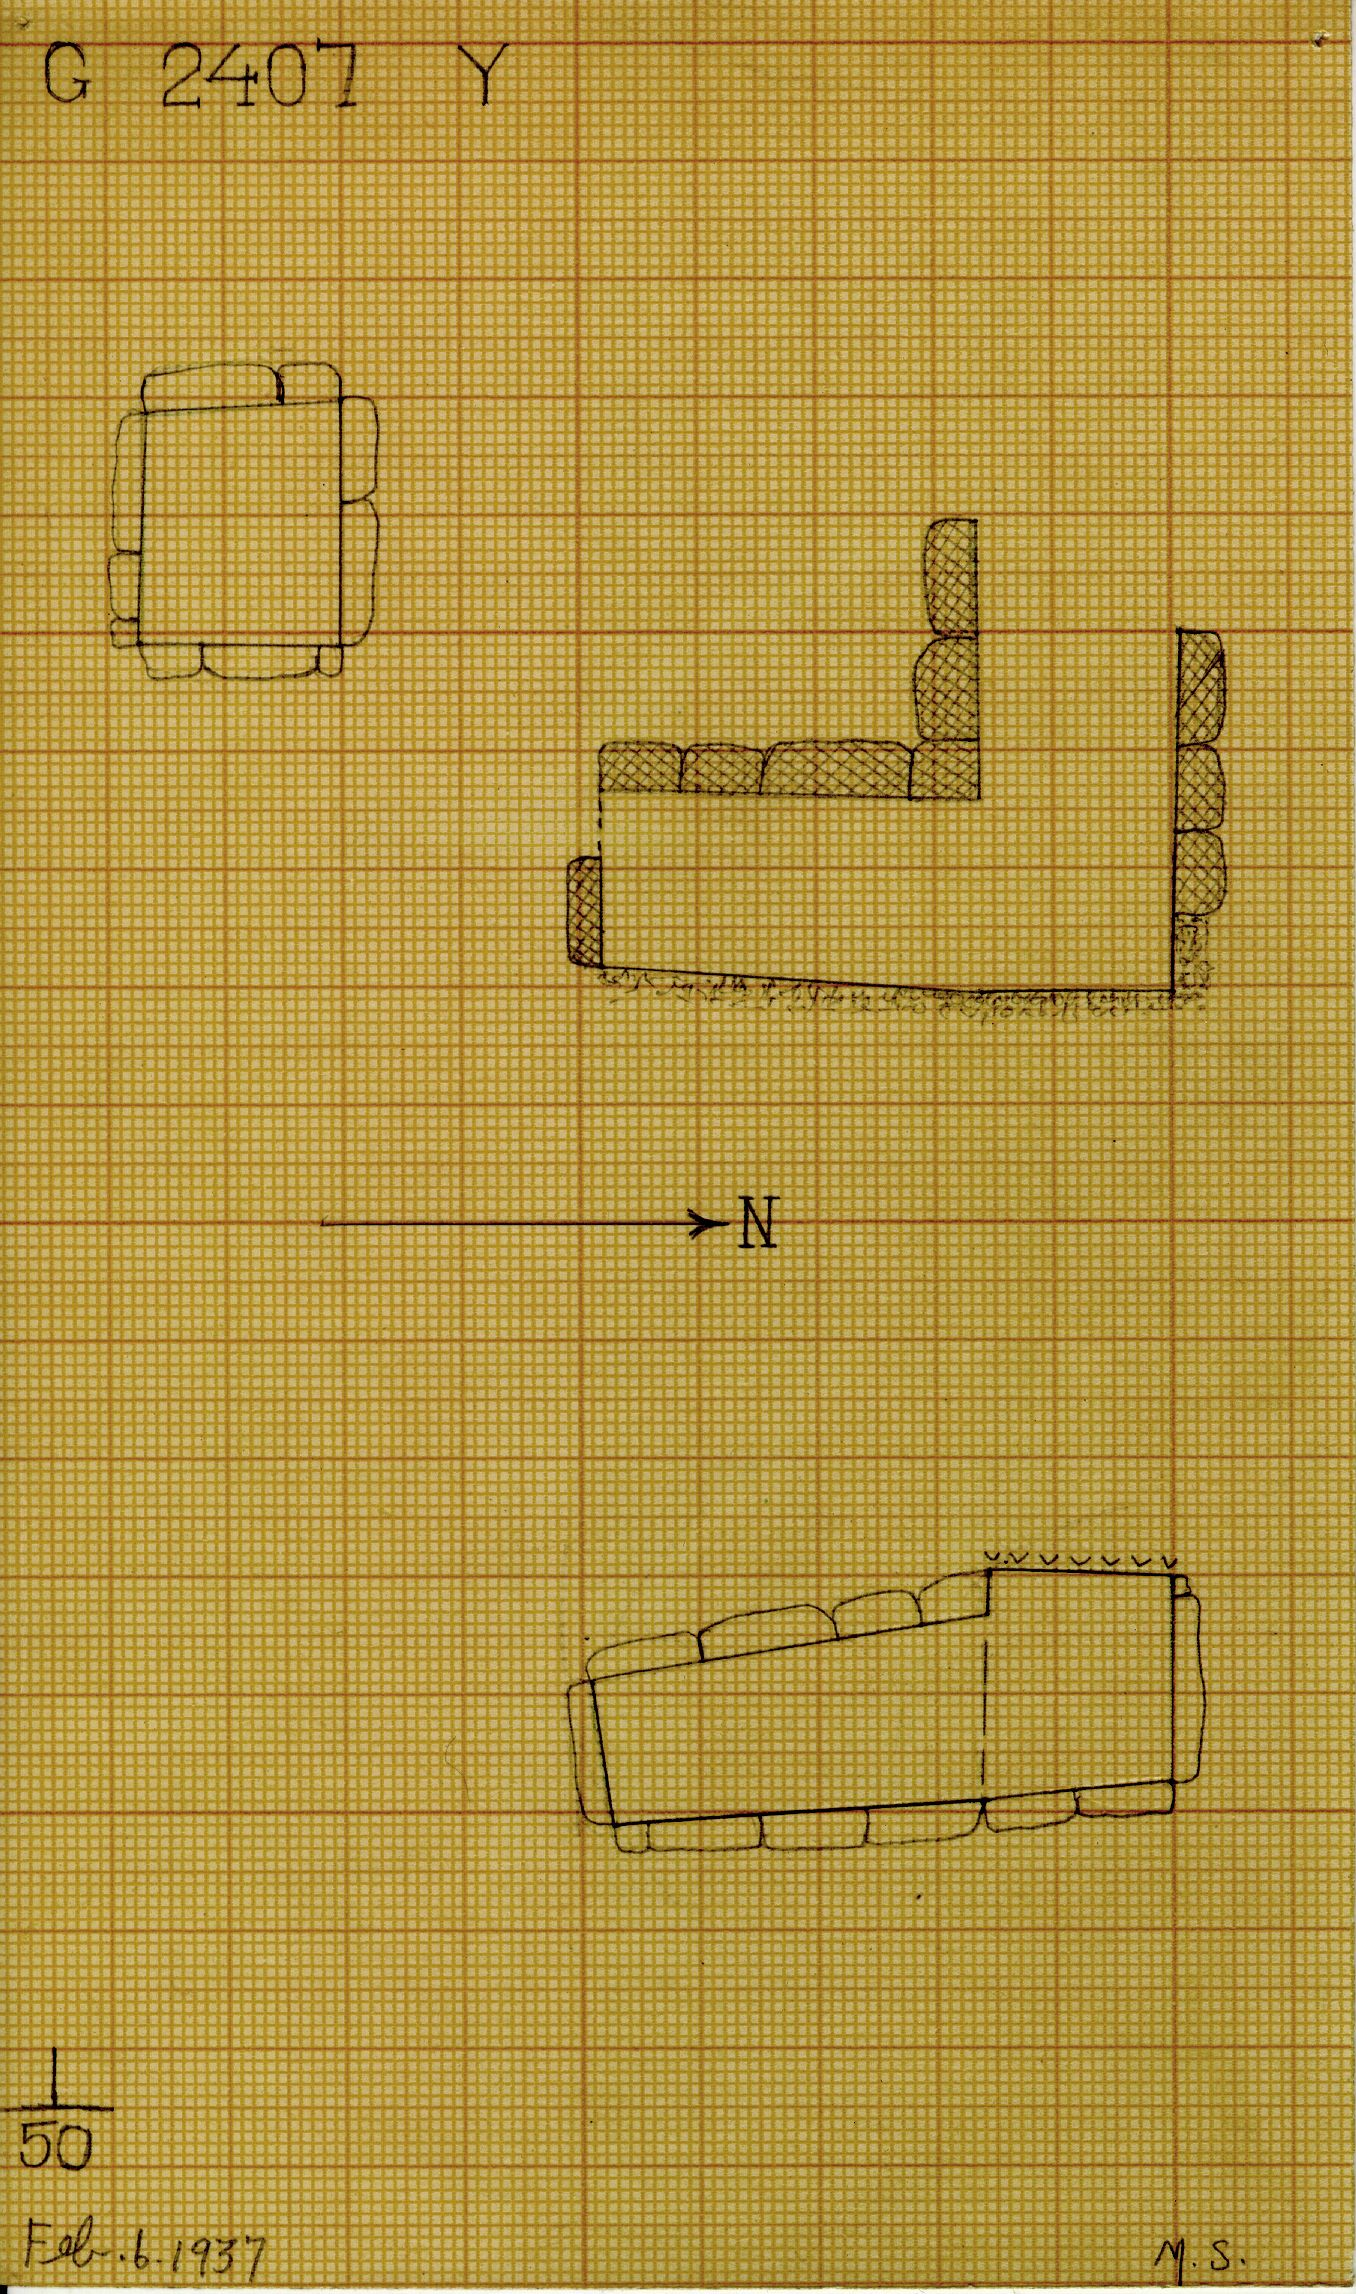 Maps and plans: G 2407, Shaft Y